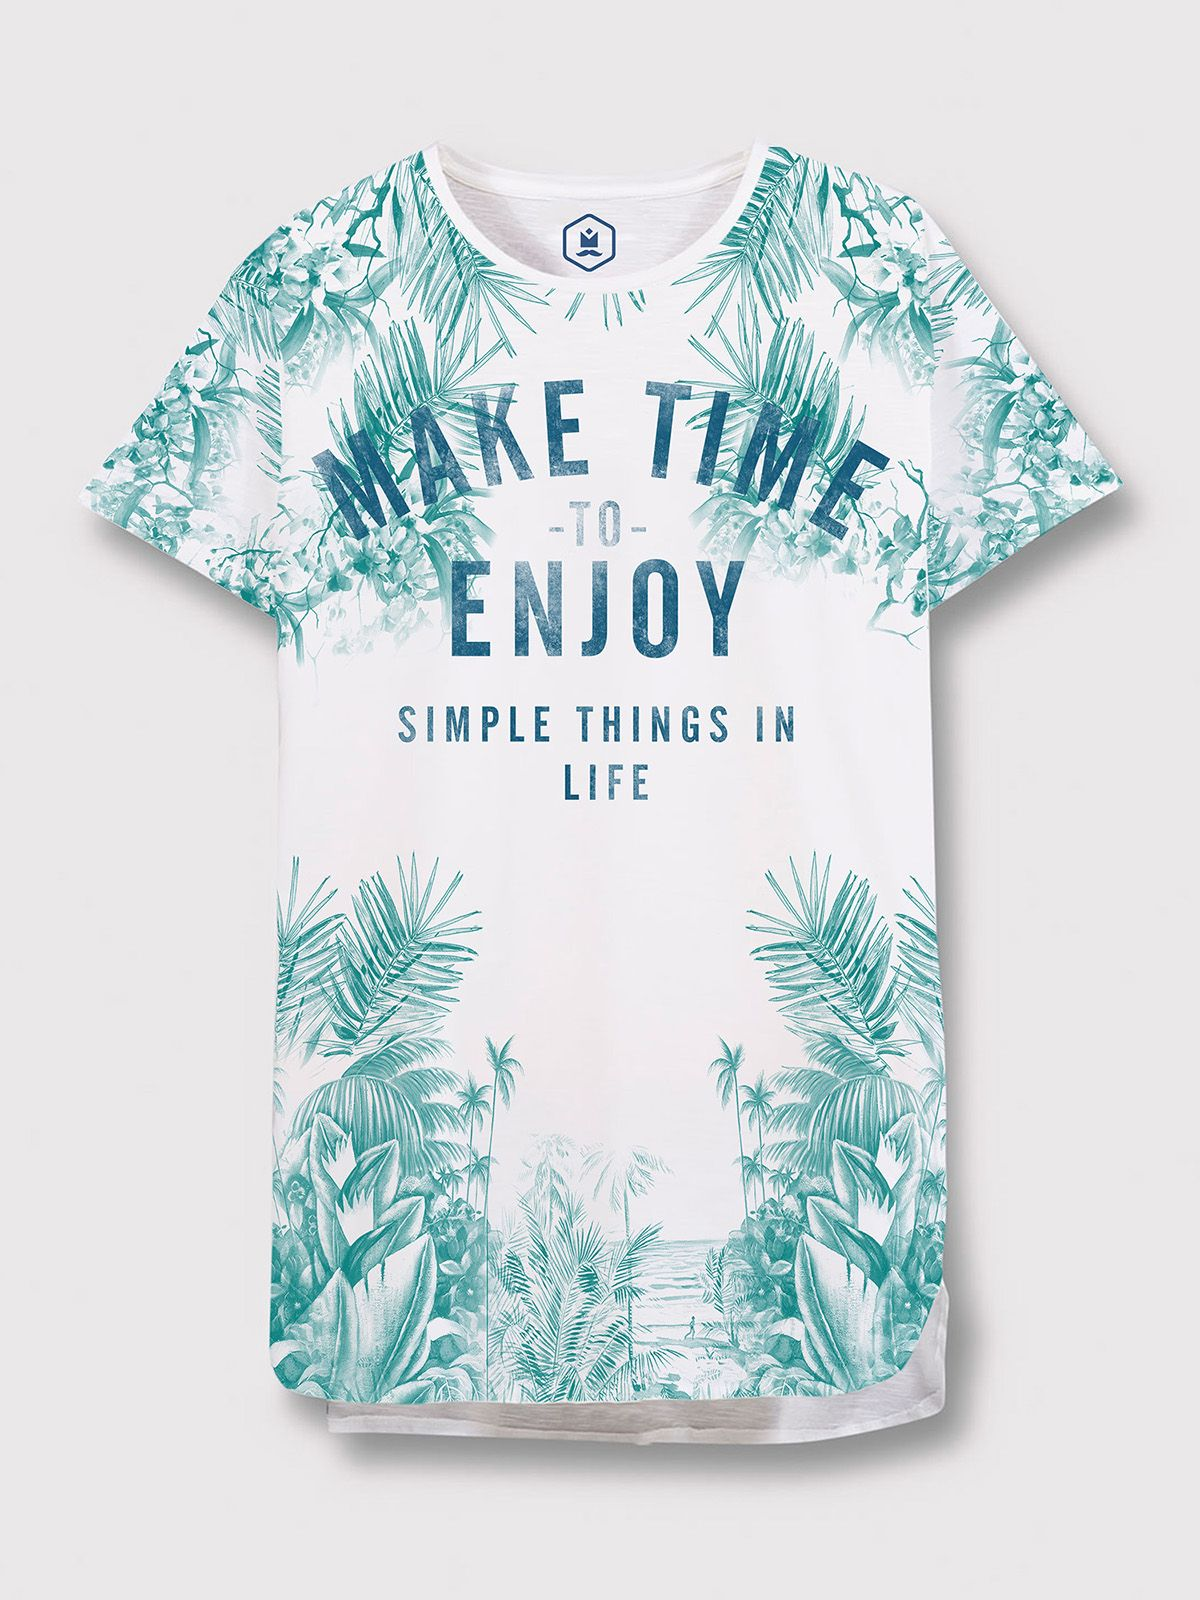 415653fb67f3 MAKE TIME TEE on Behance